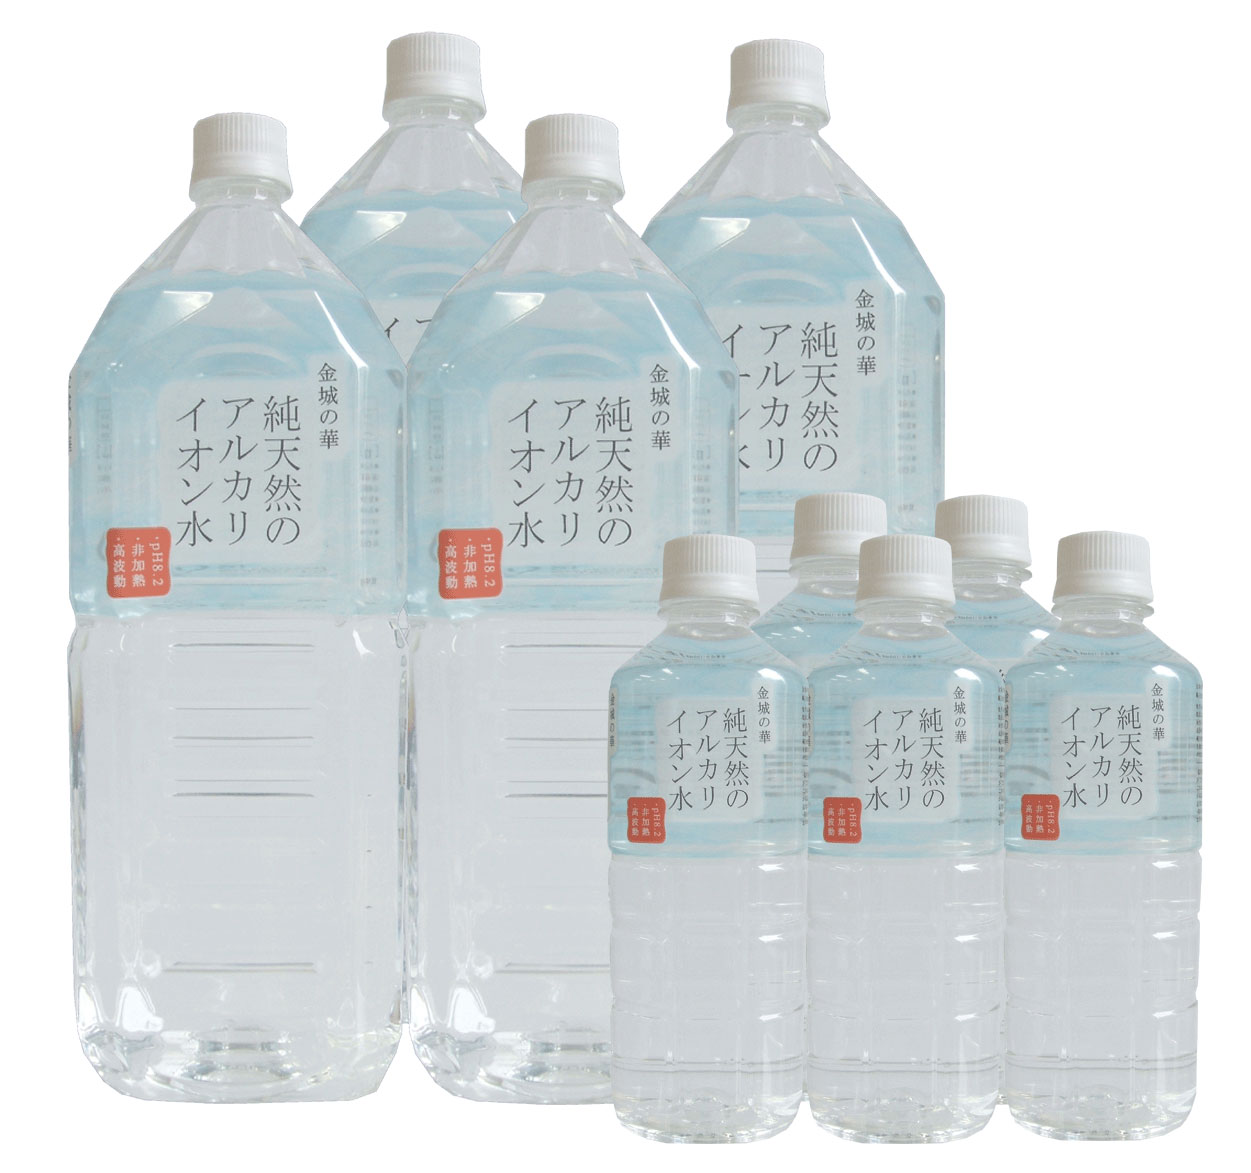 ★ immediate delivery! Pure natural alkaline water rural Kinjo China 500 ml 2 case 48 pieces cod not available! Bias Friday after shipping. 10P28Oct13